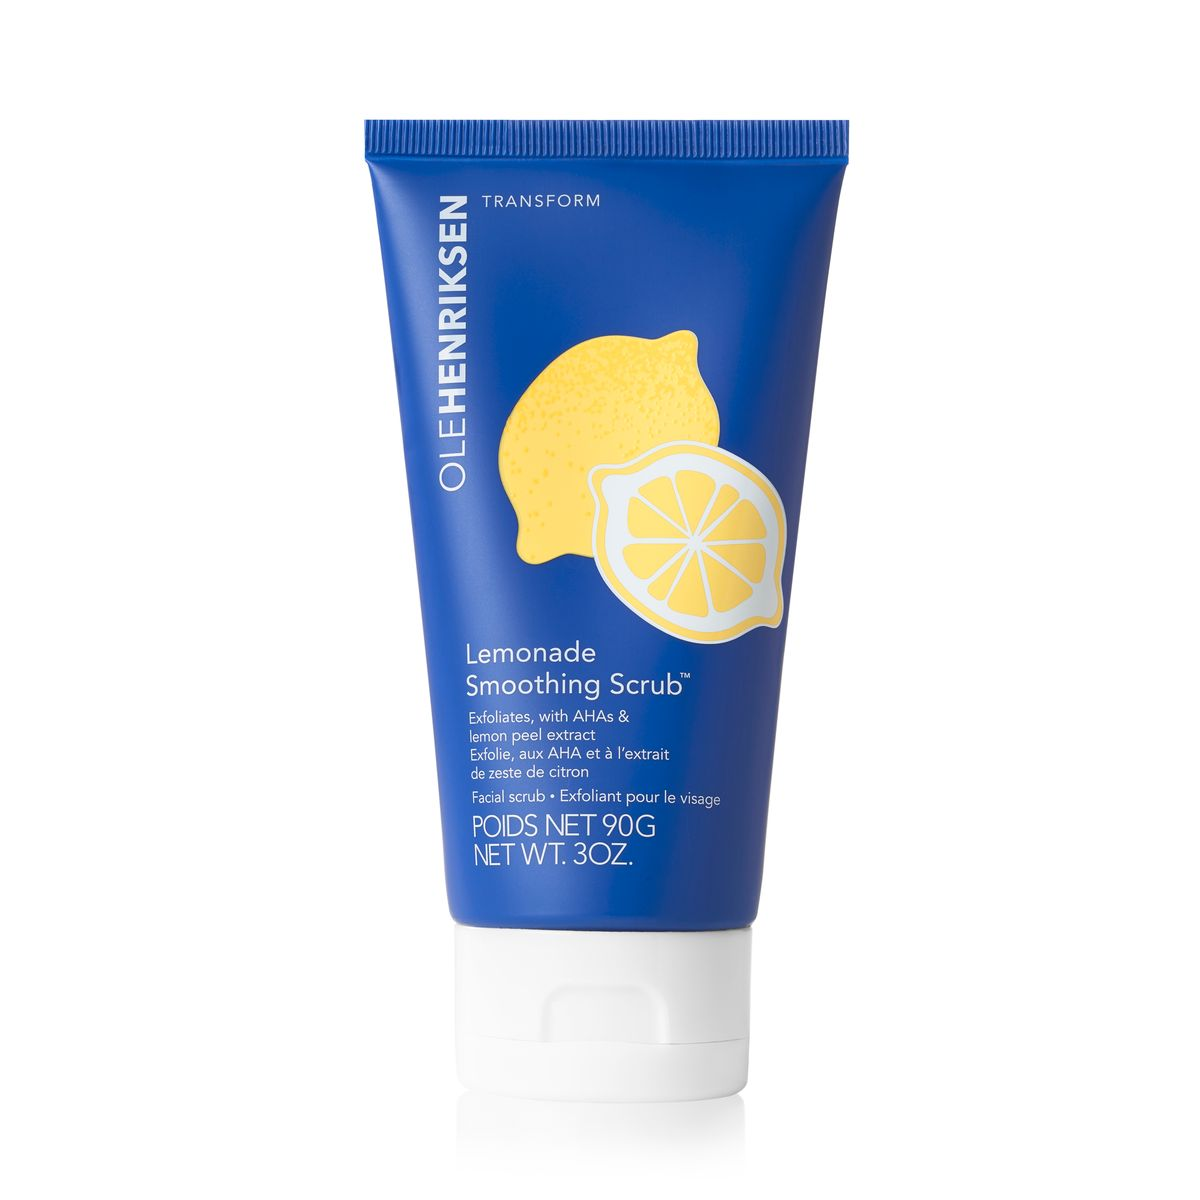 Lemonade Smoothing Scrub